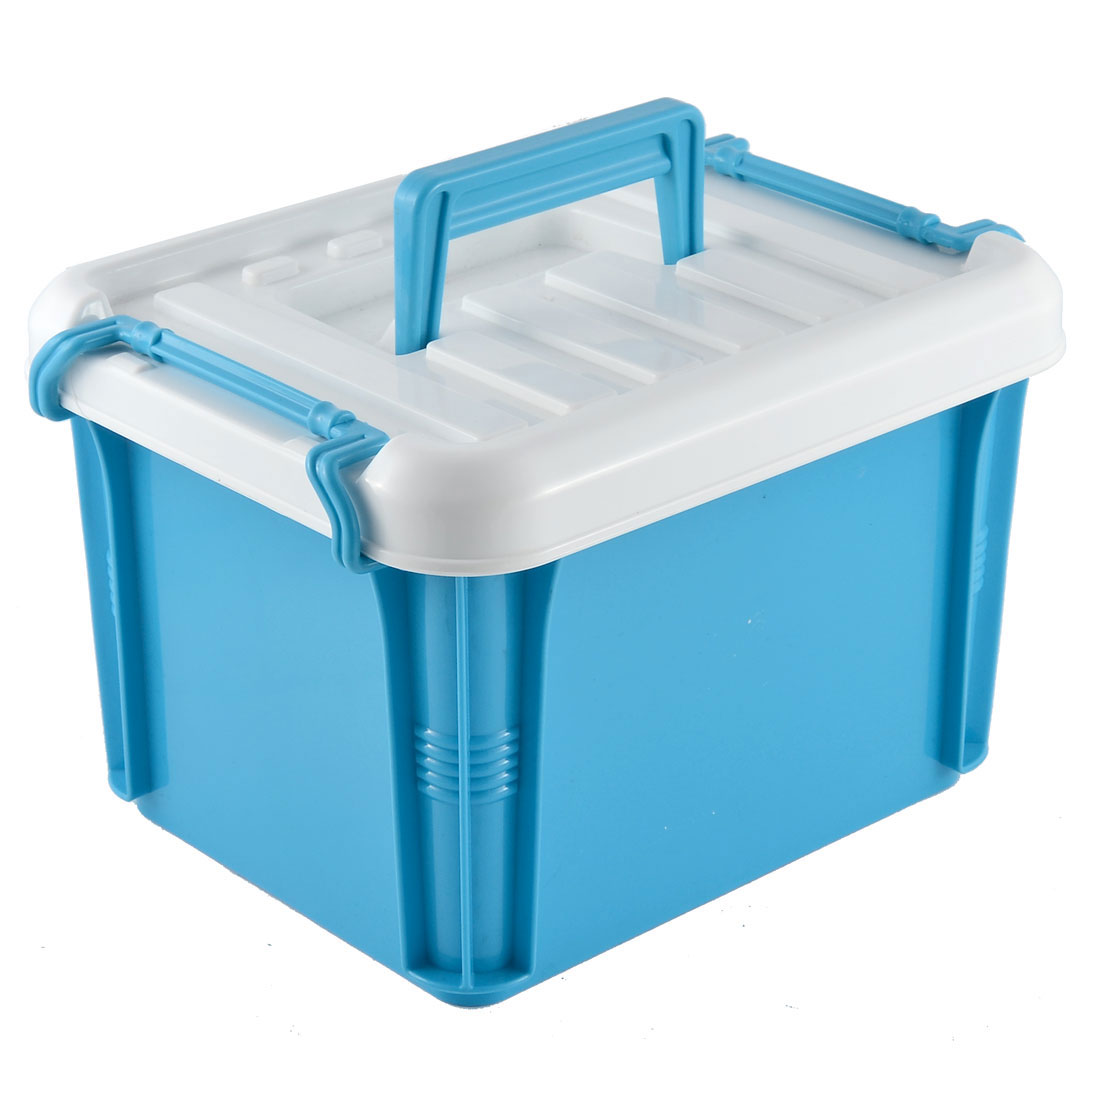 Household Office PP Two Layers Cotton Swabs Thermometer Organize Storage Case Box Container Blue